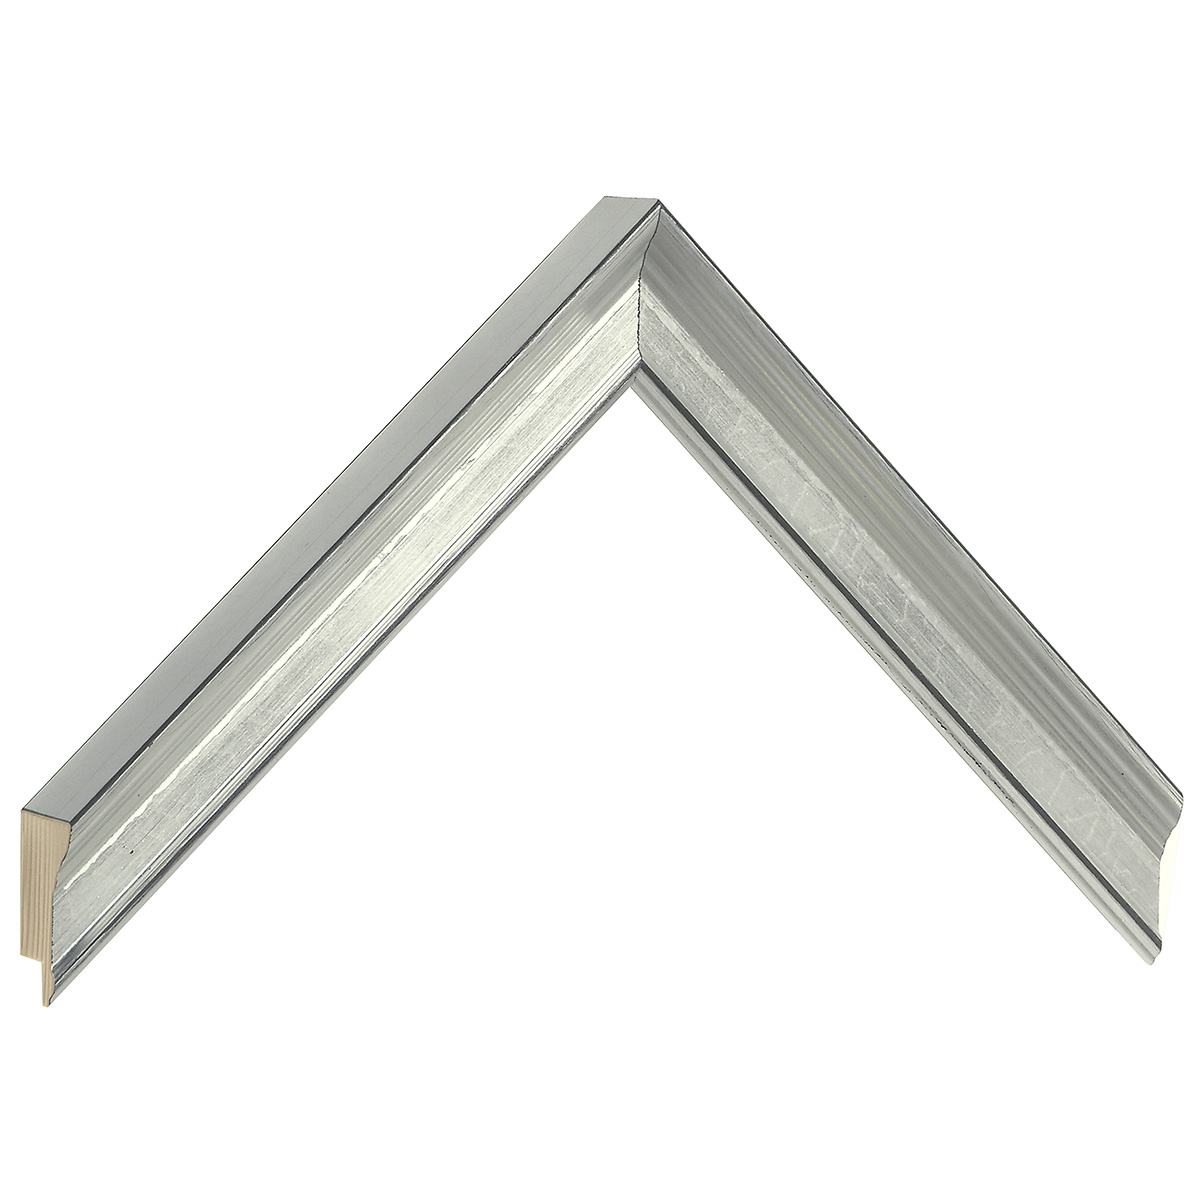 Moulding finger joint pine - width 23mm height 25 - silver